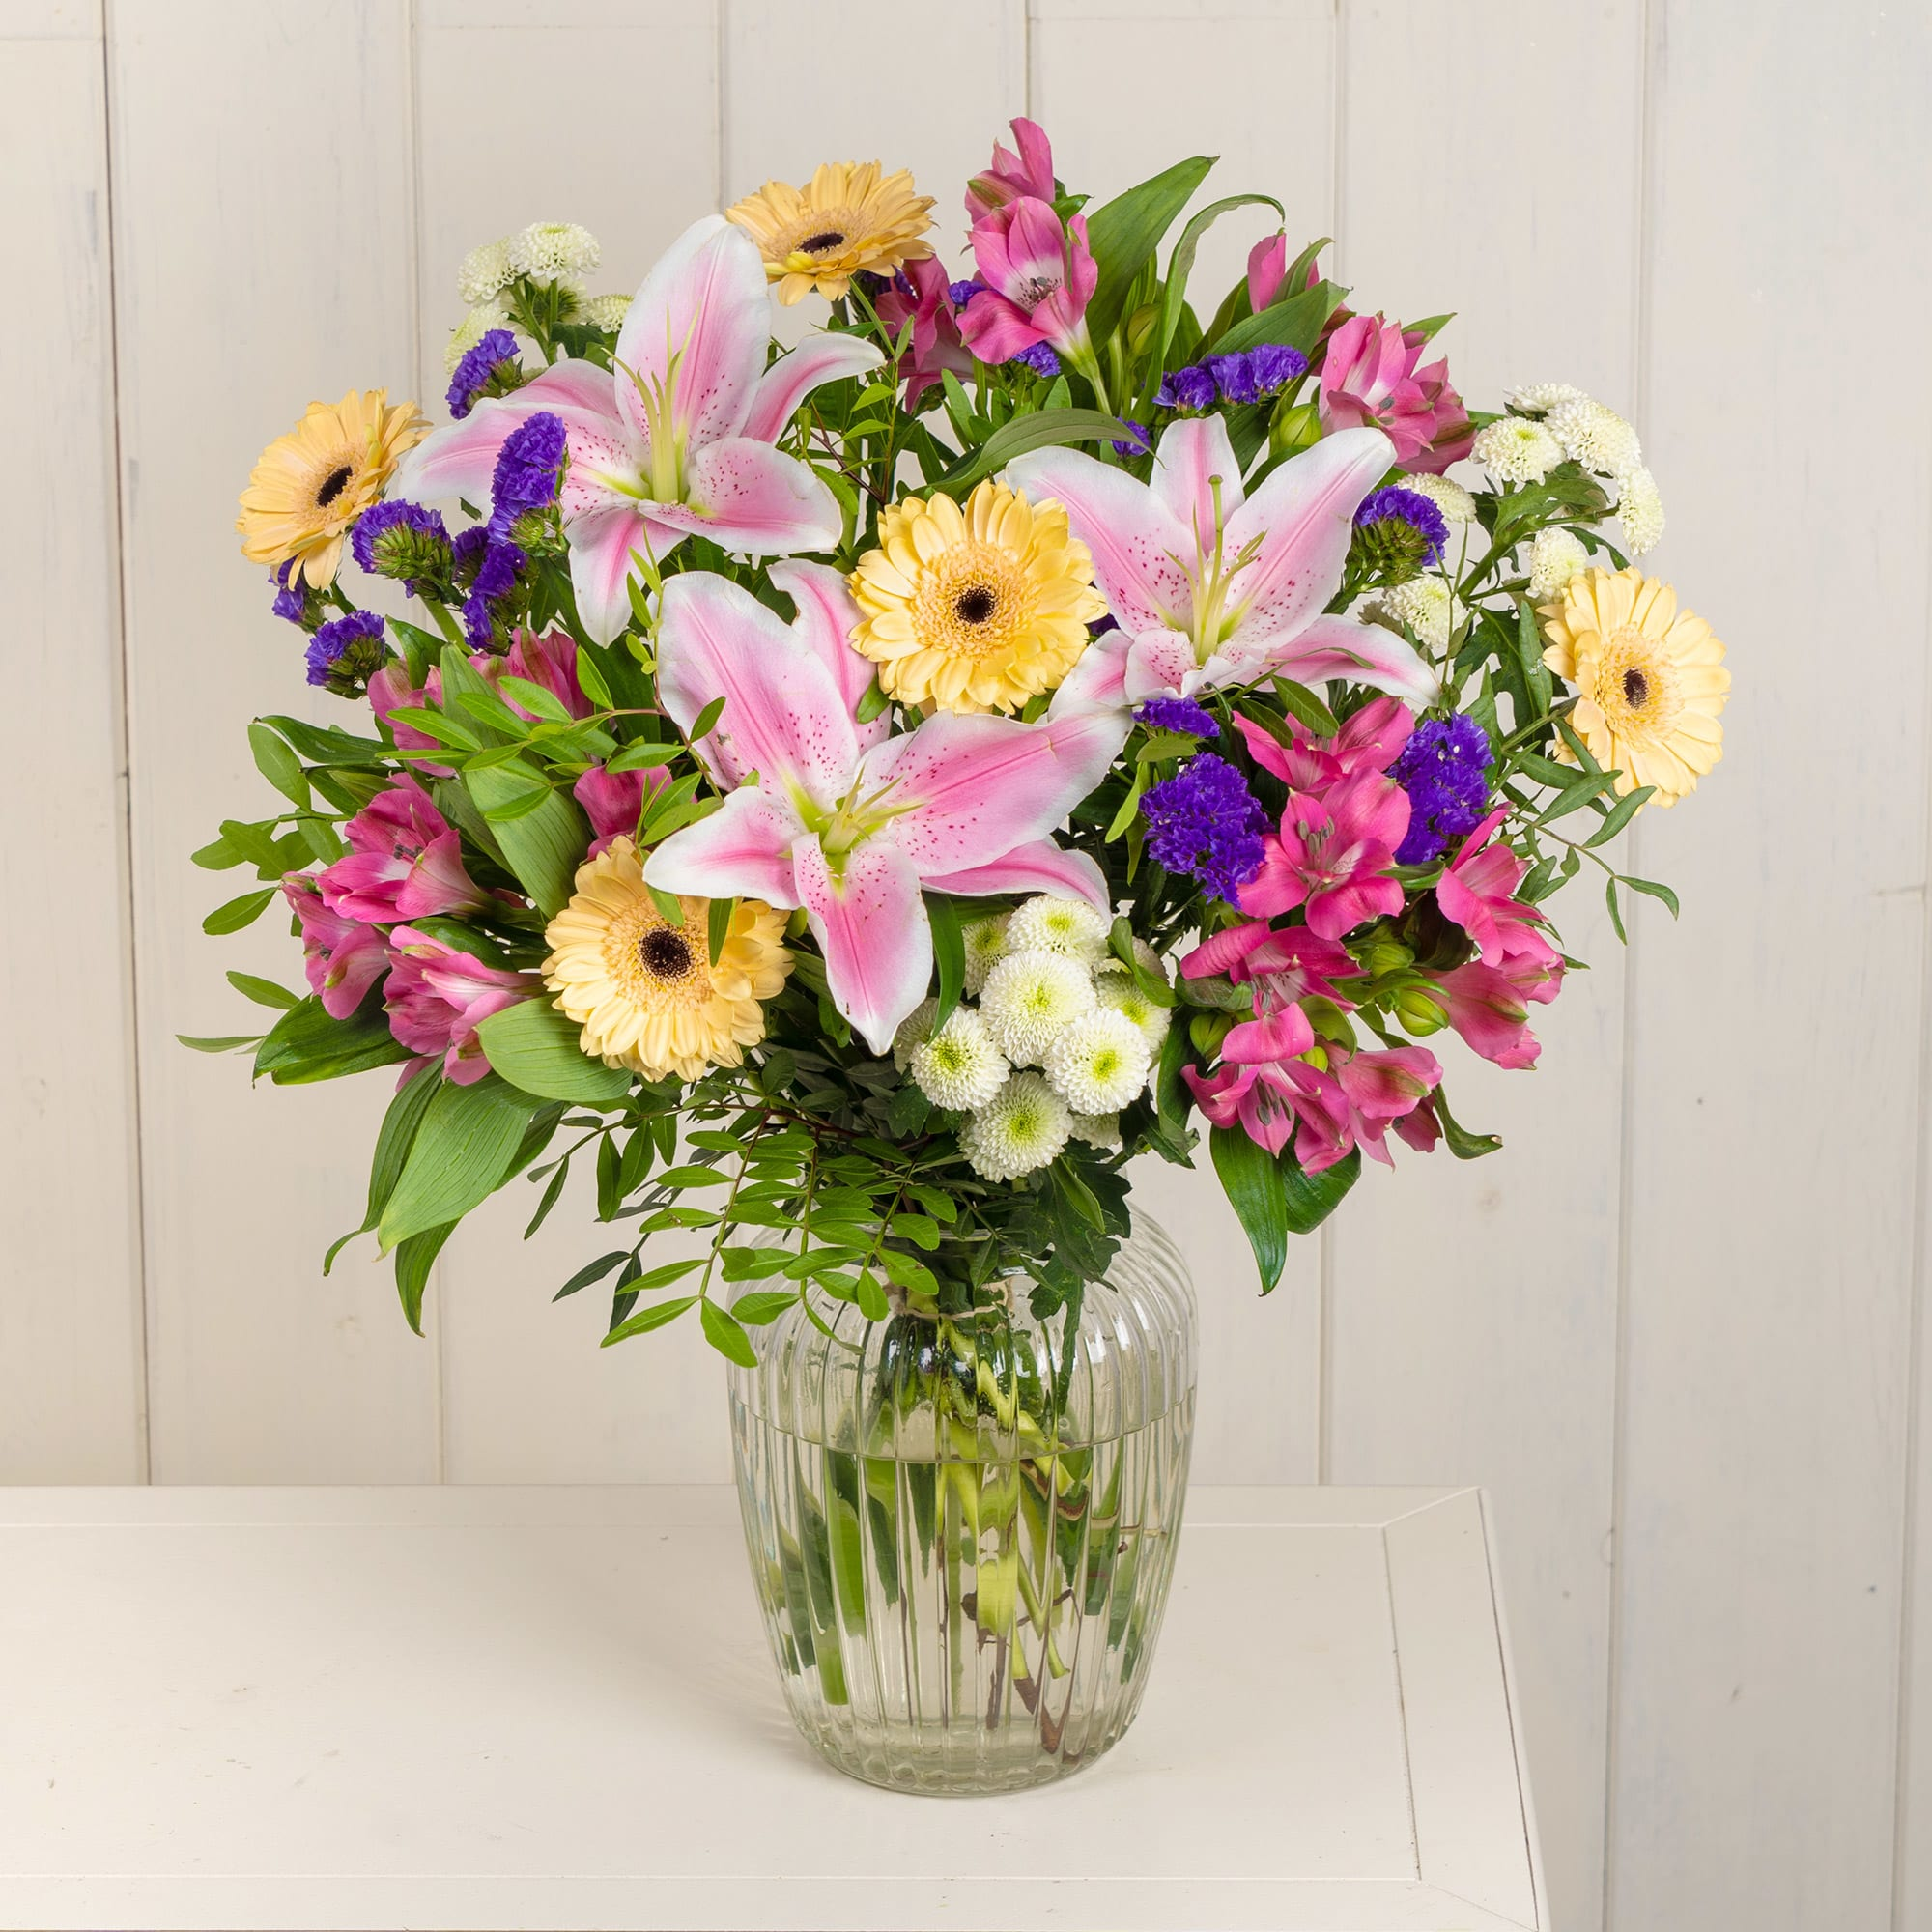 Spring Time with Lilies